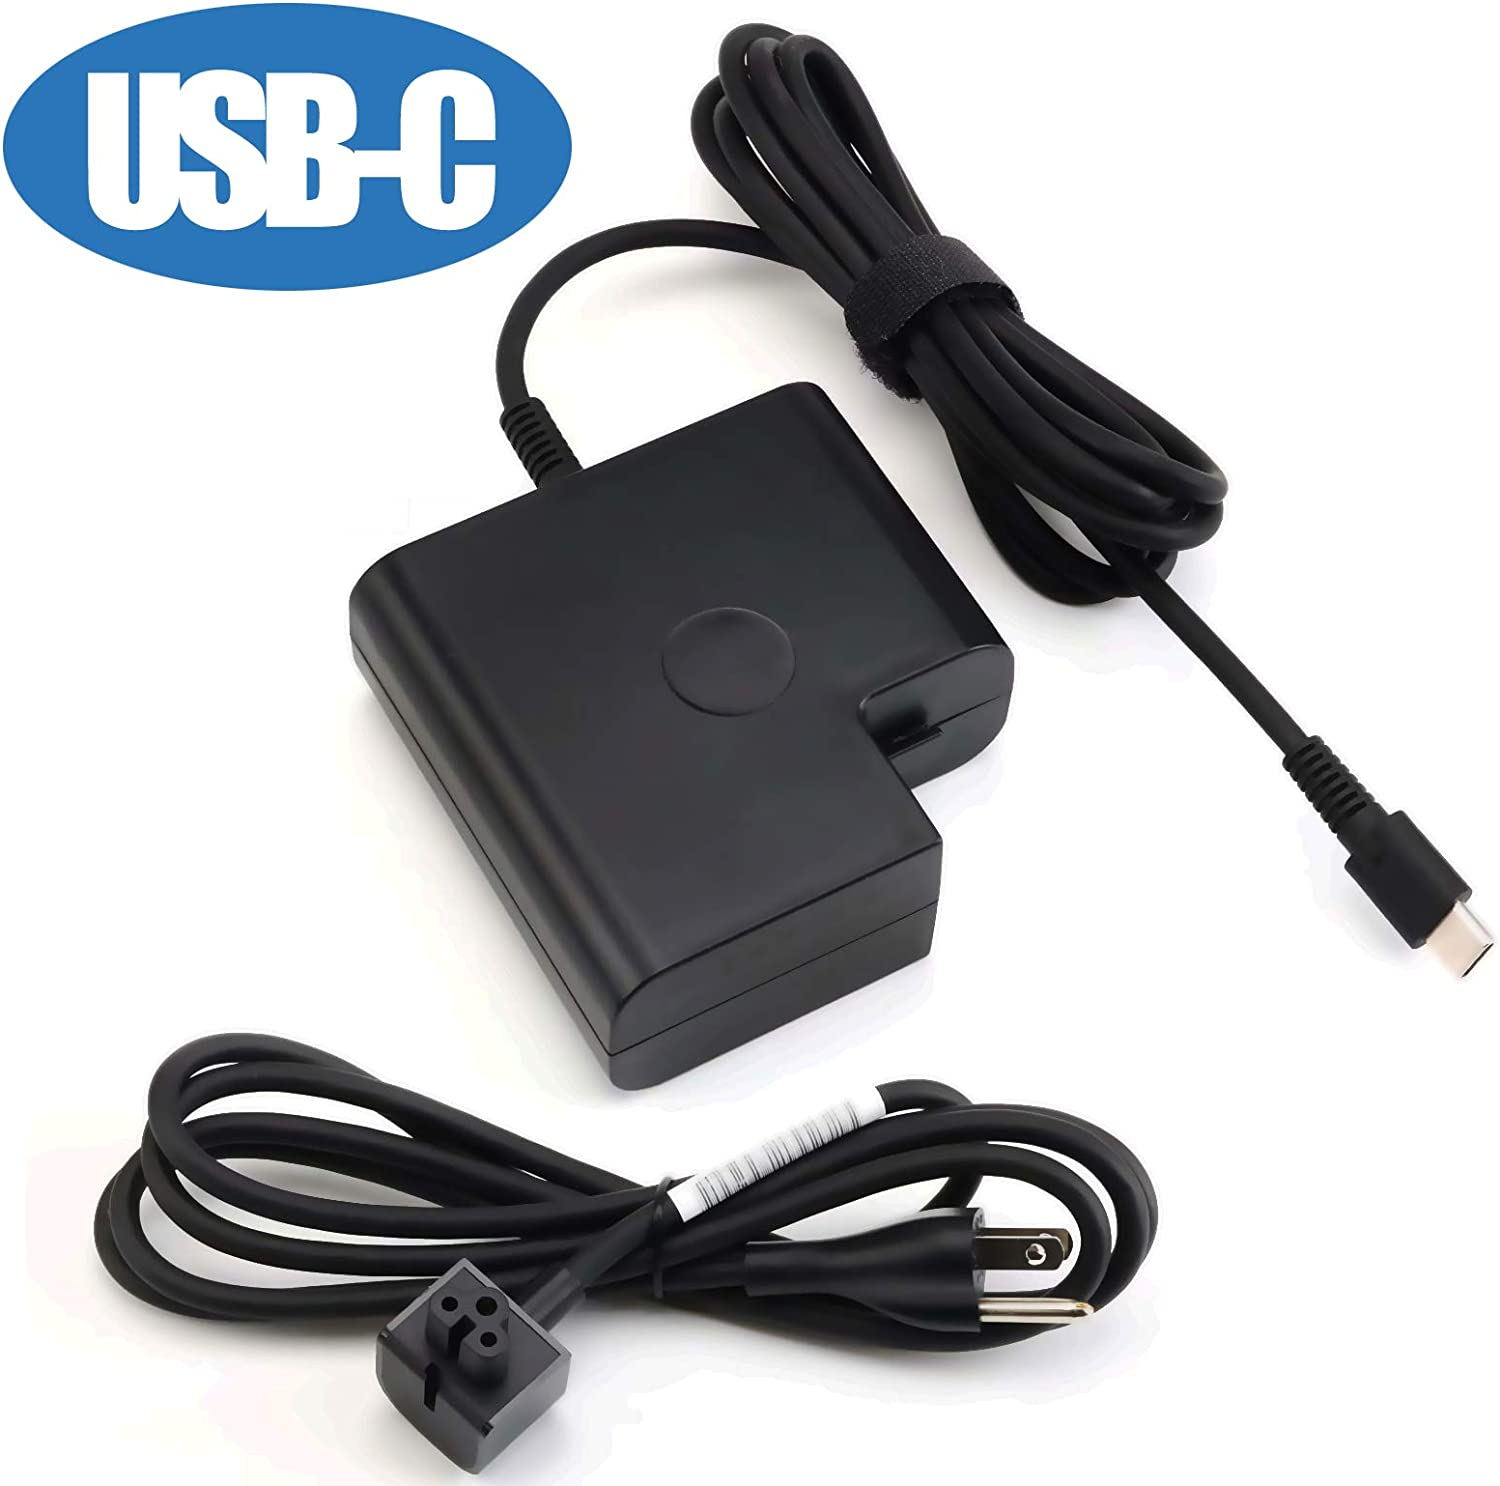 65W USB Type-C Charger Adapter for HP Spectre X360 13 15 13-AC000 13-AE000 13-AF000 13-AW0000 13-AP0000:13-AC033DX 13-AW0013DX 13-AW0023DX 13-AP0033DX 13-AP0023DX 925740-002 860065-002 860209-850